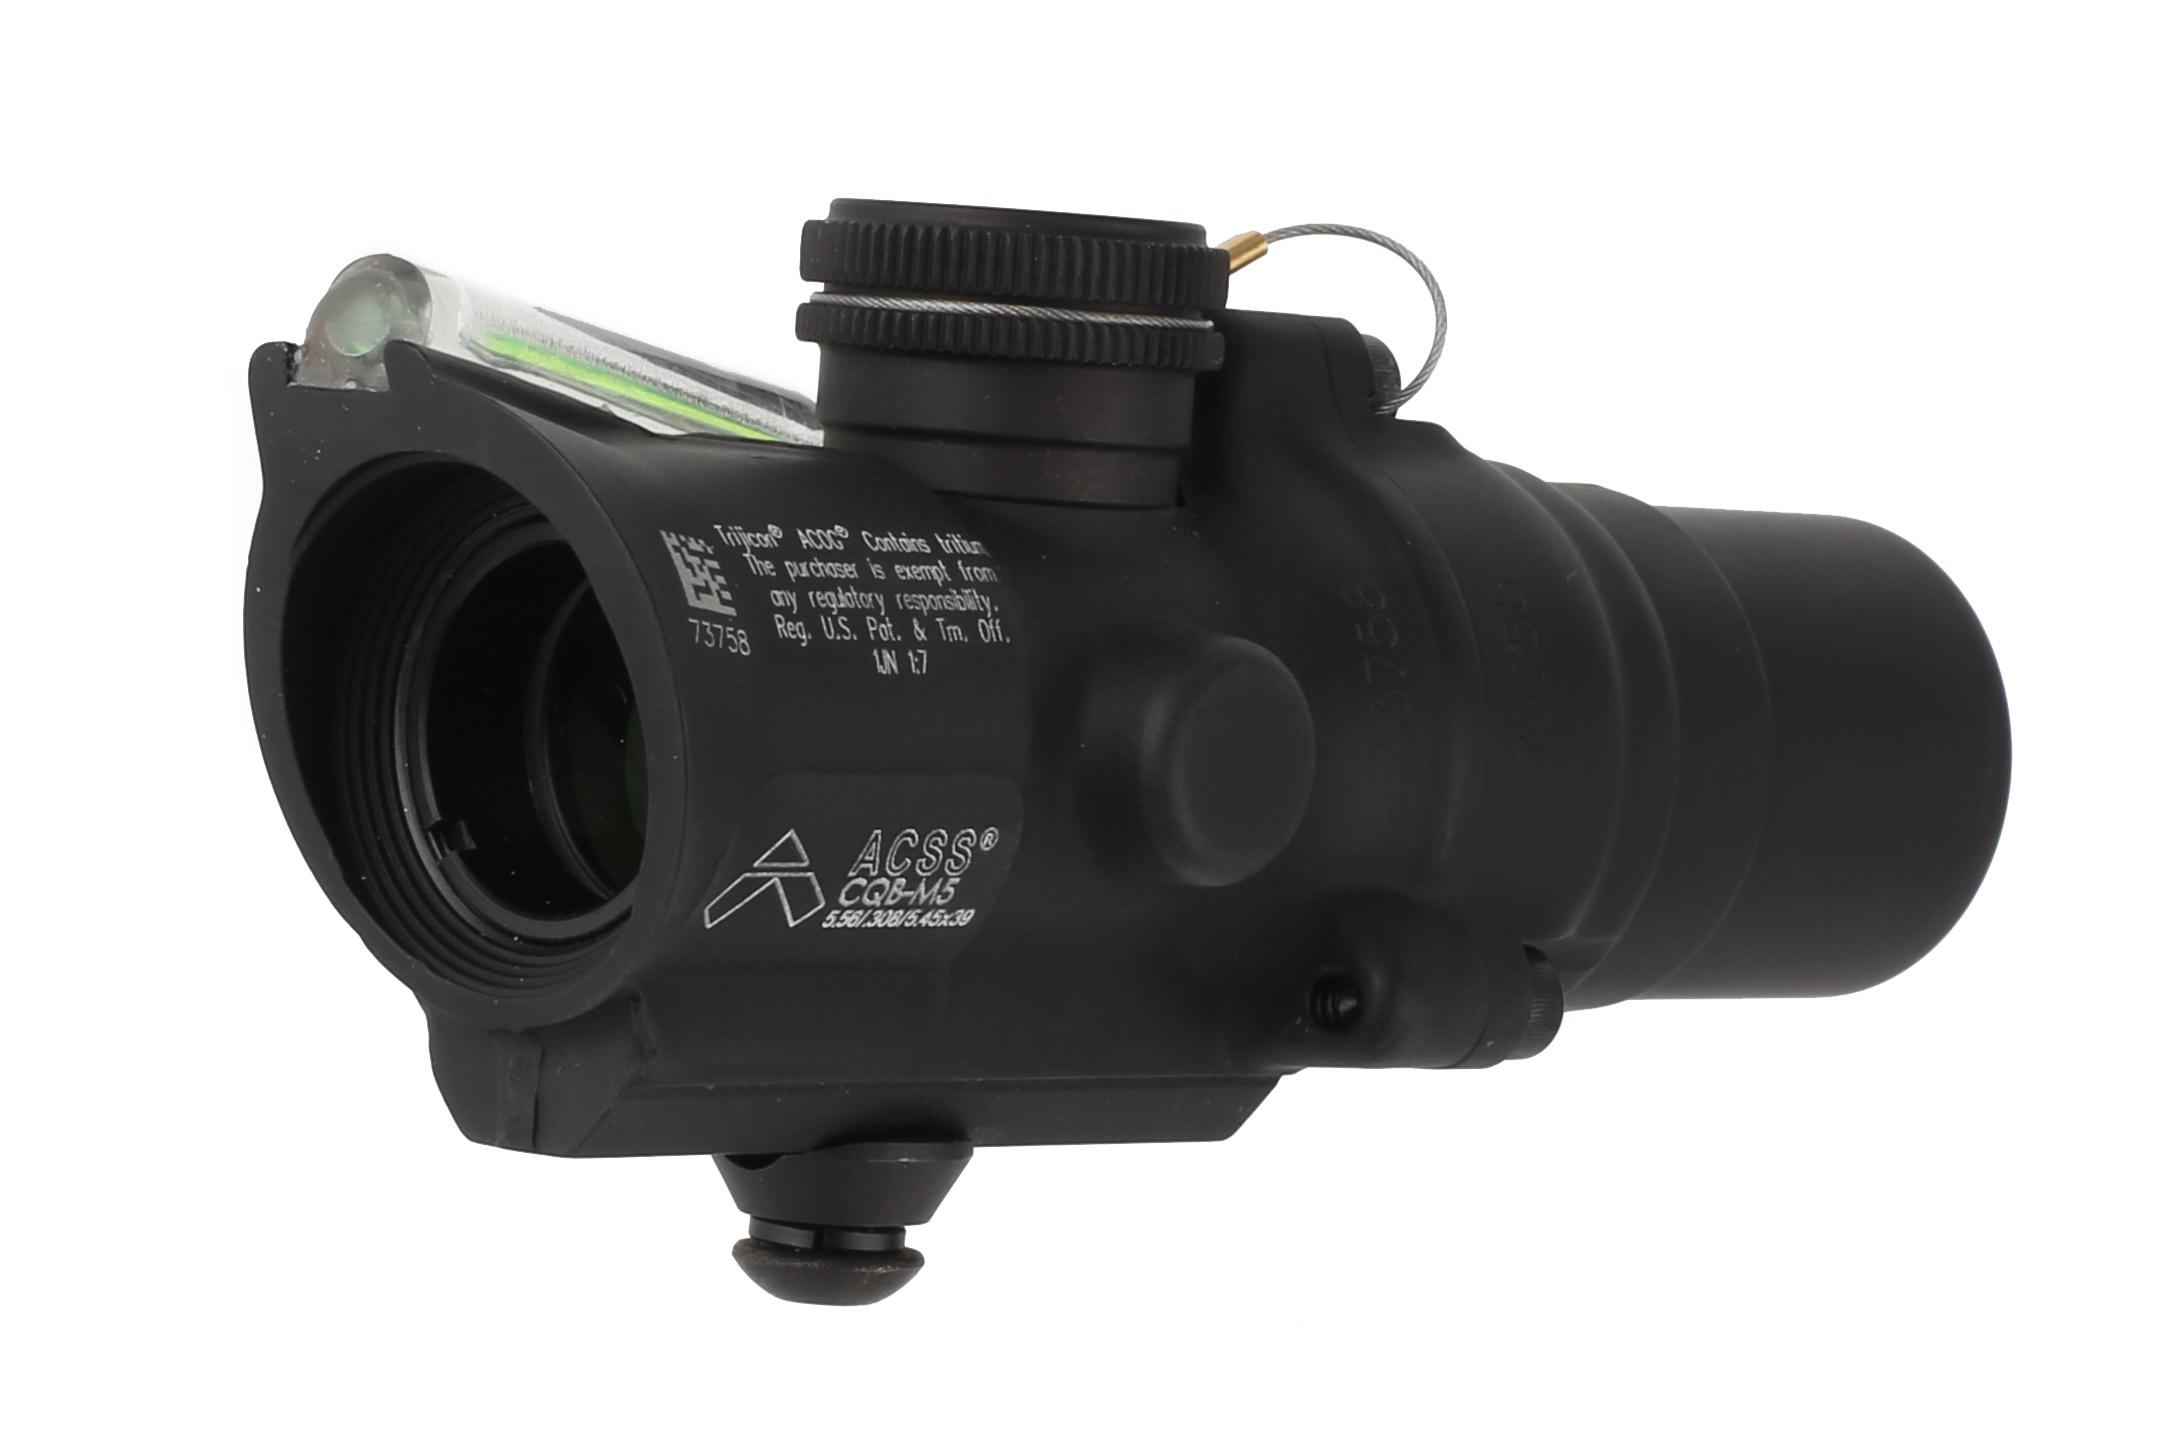 Trijicon mini ACOG 1.5x16mm compact combat scope features a dual-illuminated green ACSS CQB-M5 reticle and low base